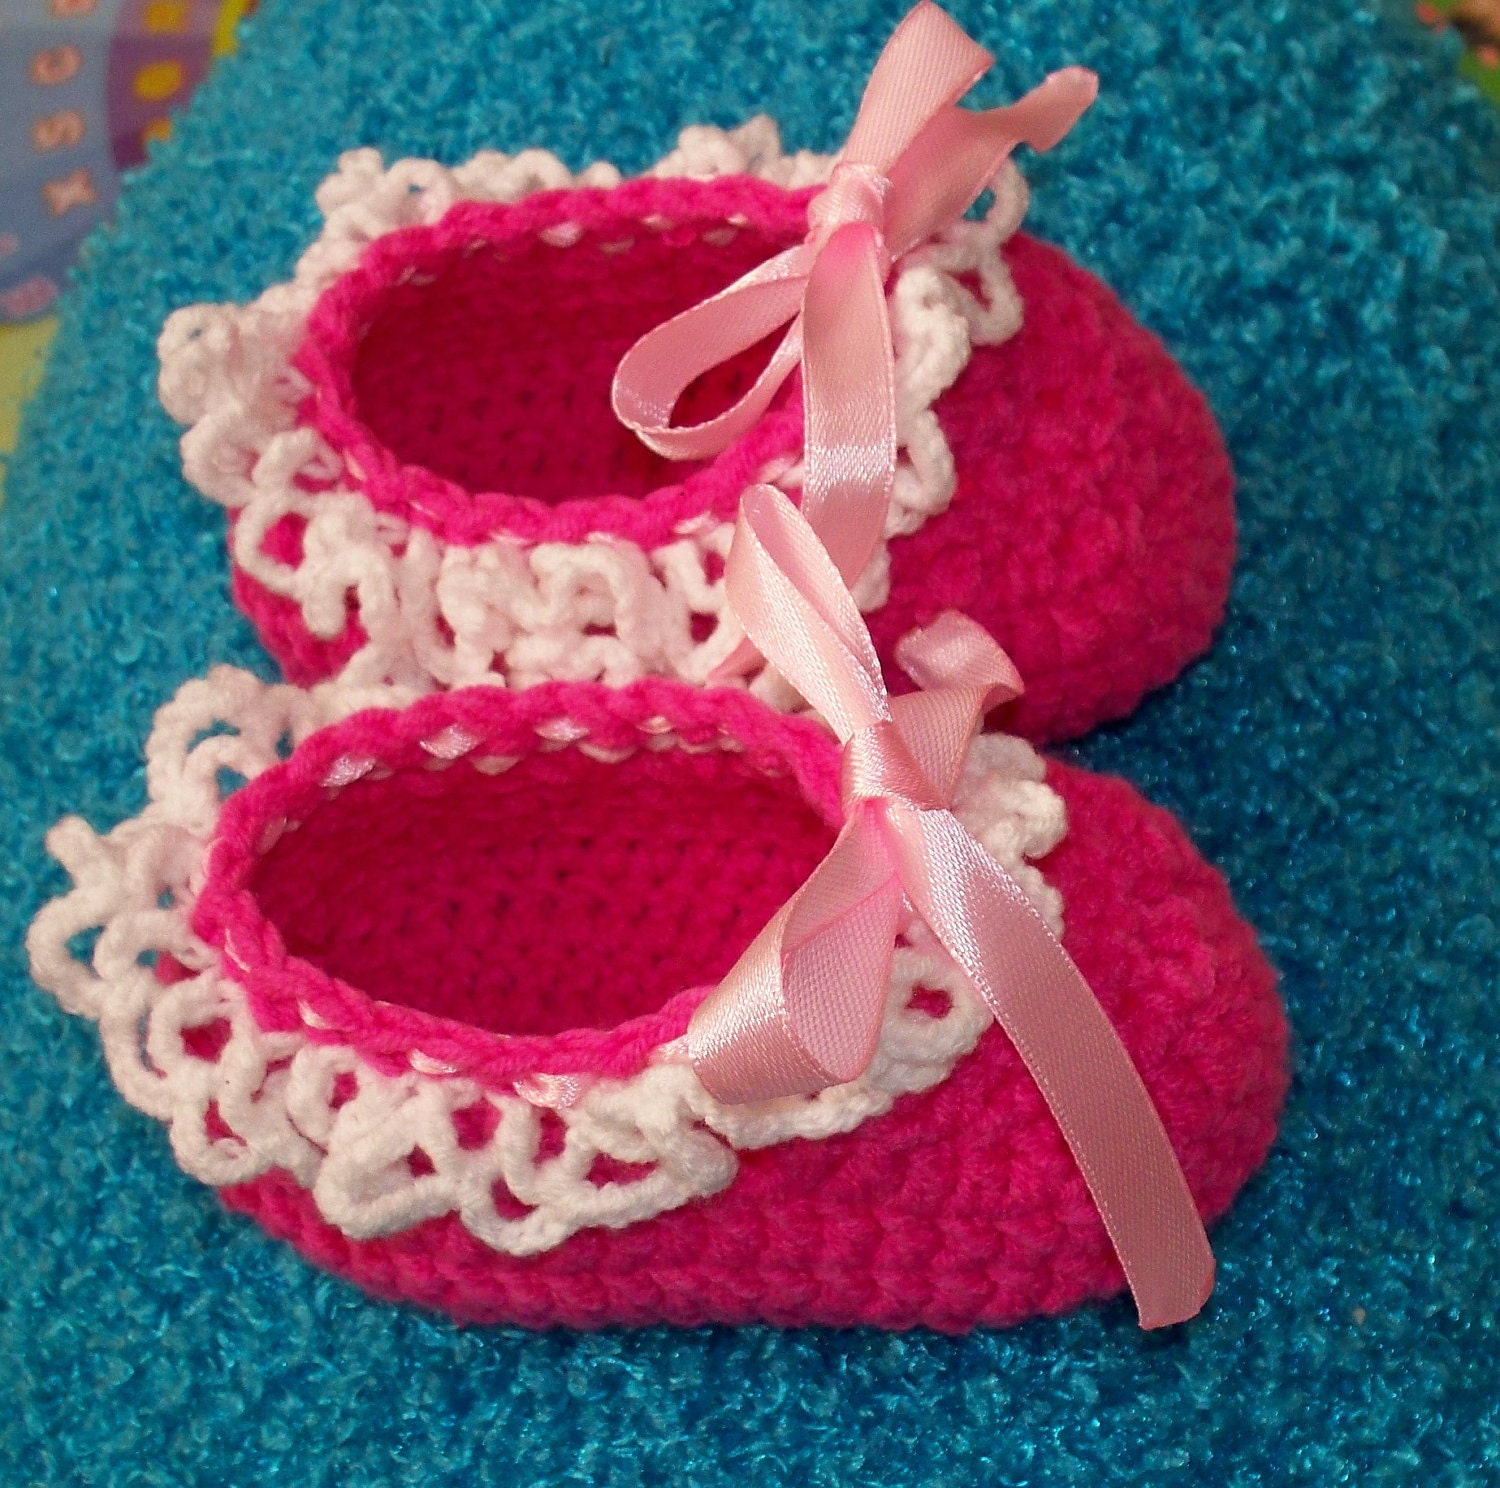 Baby booties with a cobweb of lace